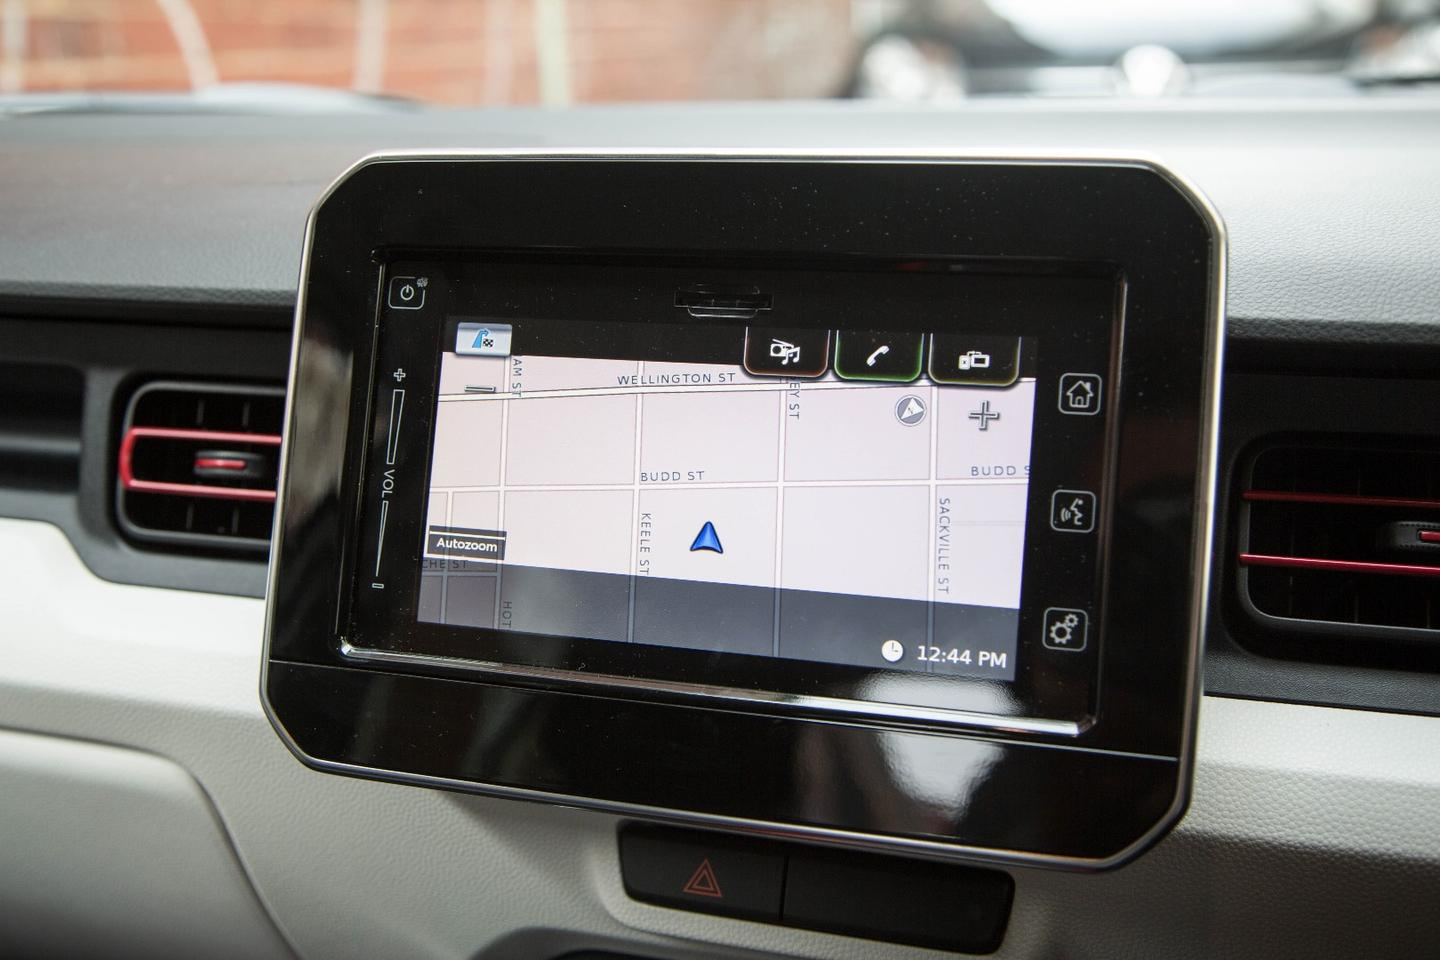 The navigation screen in the Suzuki Ignis